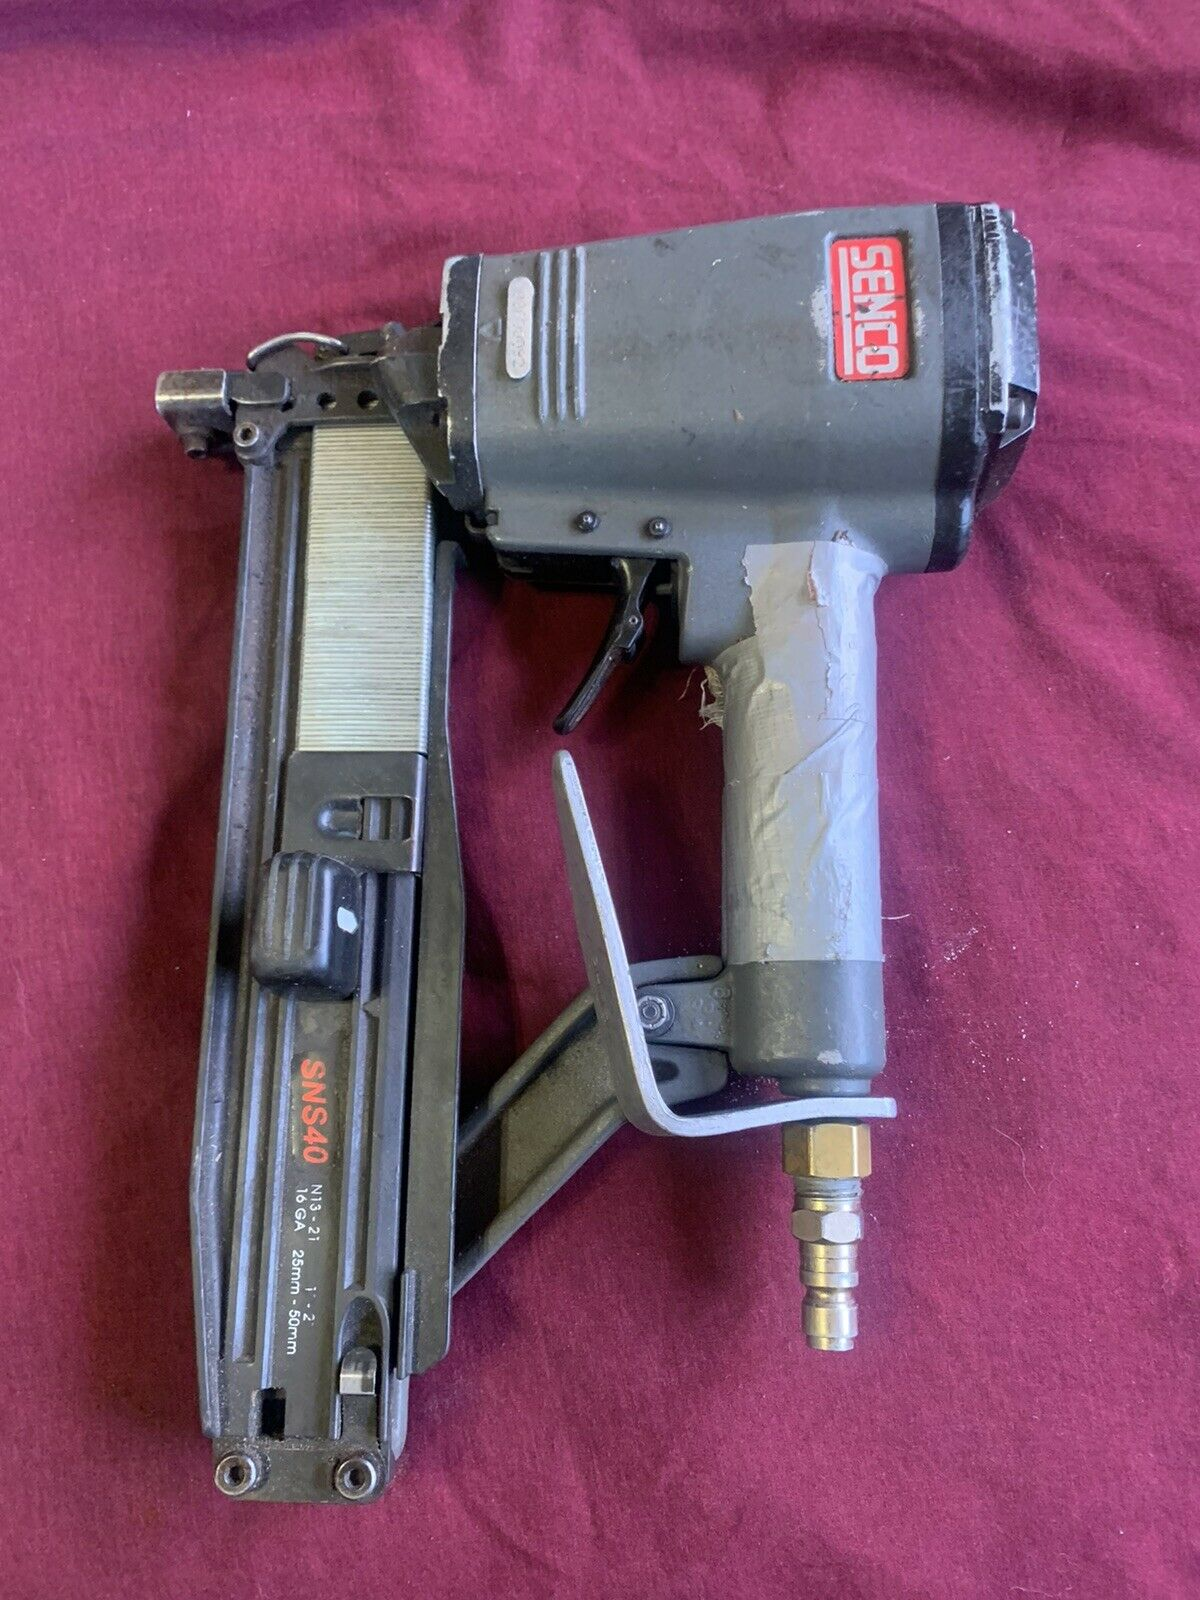 Senco Staple Gun SNS40 16-Gauge 2'' Air 7/16'' Crown Heavy Wire Stapler Tested. Available Now for 125.00